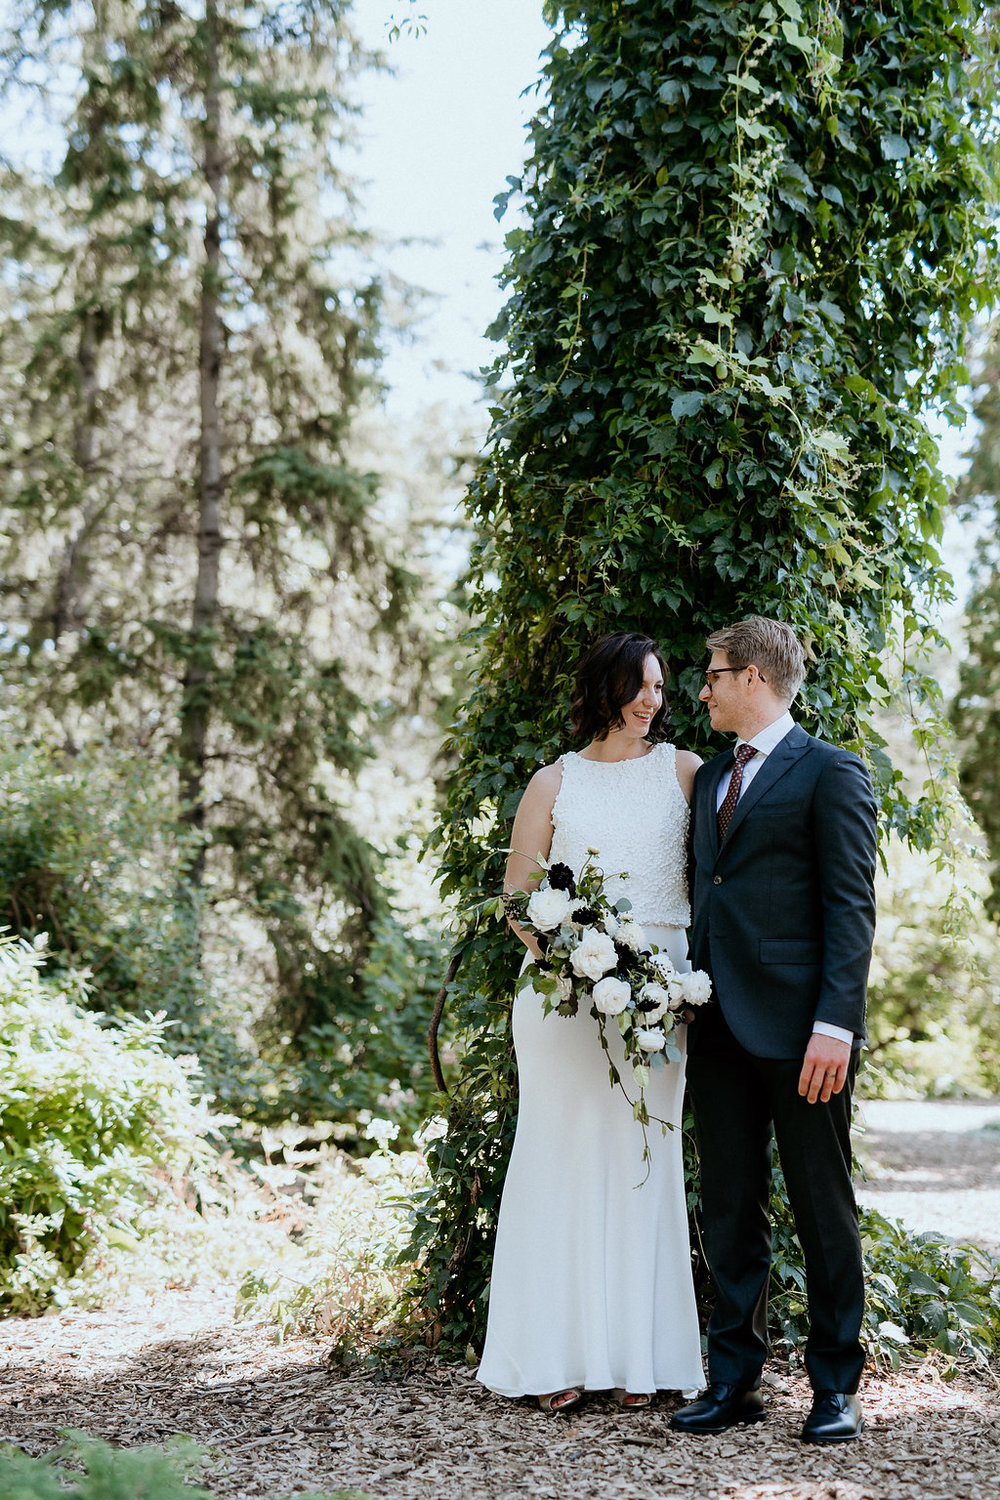 Assiniboine Park Wedding Photos - Wedding planning in Winnipeg